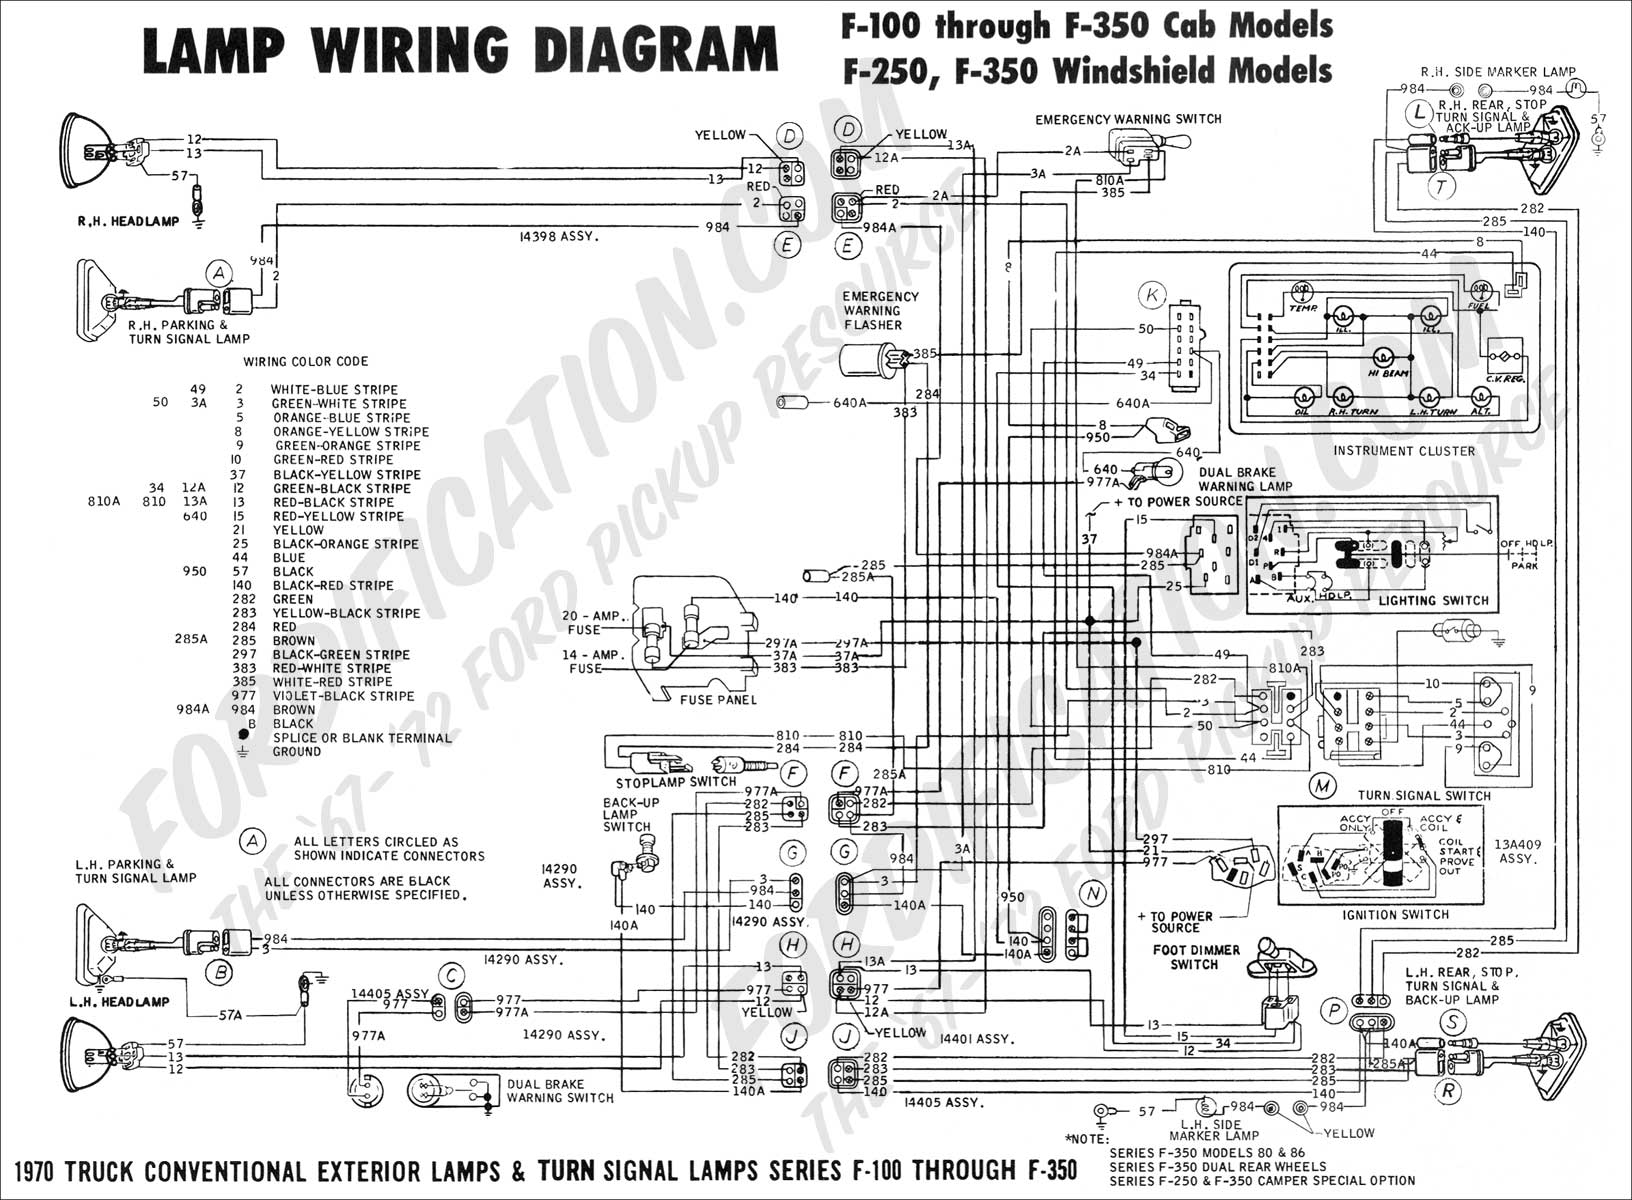 wiring diagram_70ext lights01?resize=665%2C489 wiring harness diagram for 4610 ford tractor the wiring diagram ford wiring harness diagrams at gsmx.co